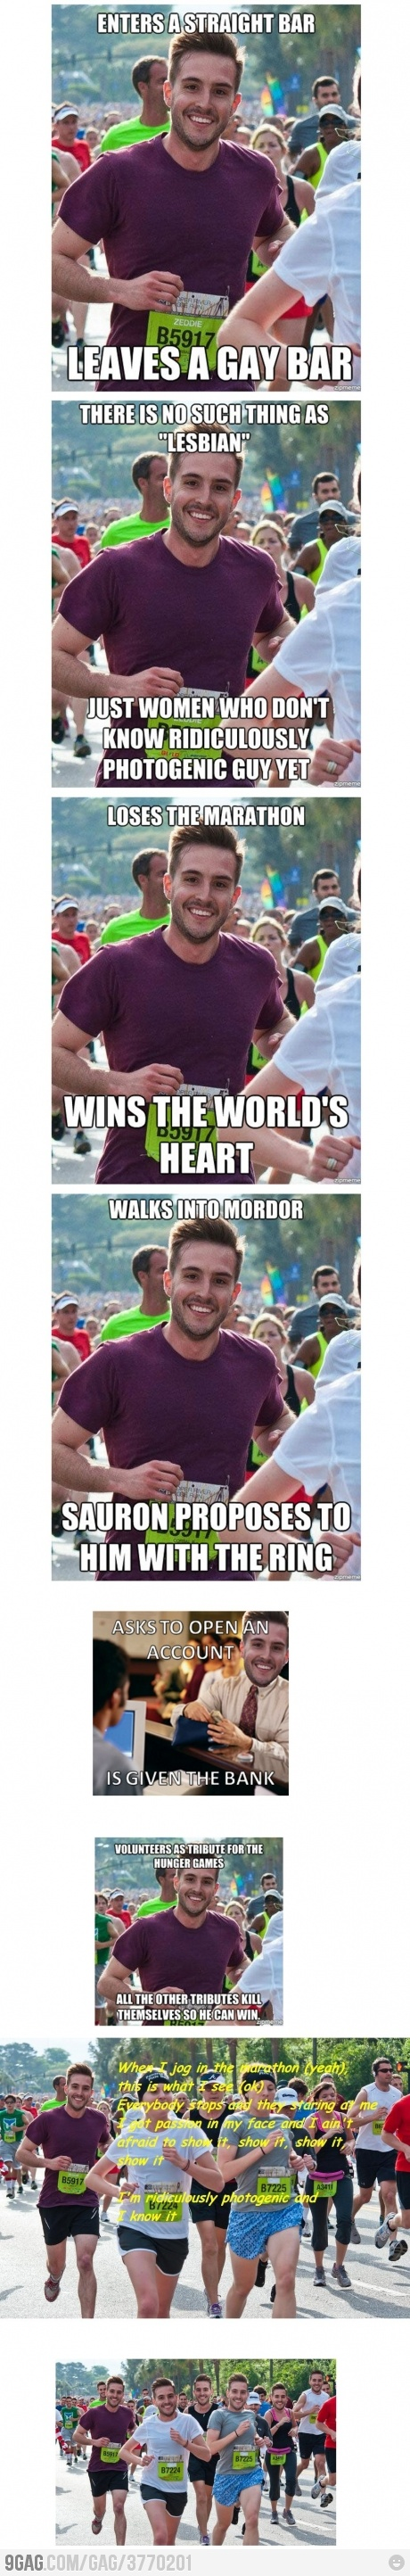 hah im not sick of these ridiculously photogenic guy memes yet